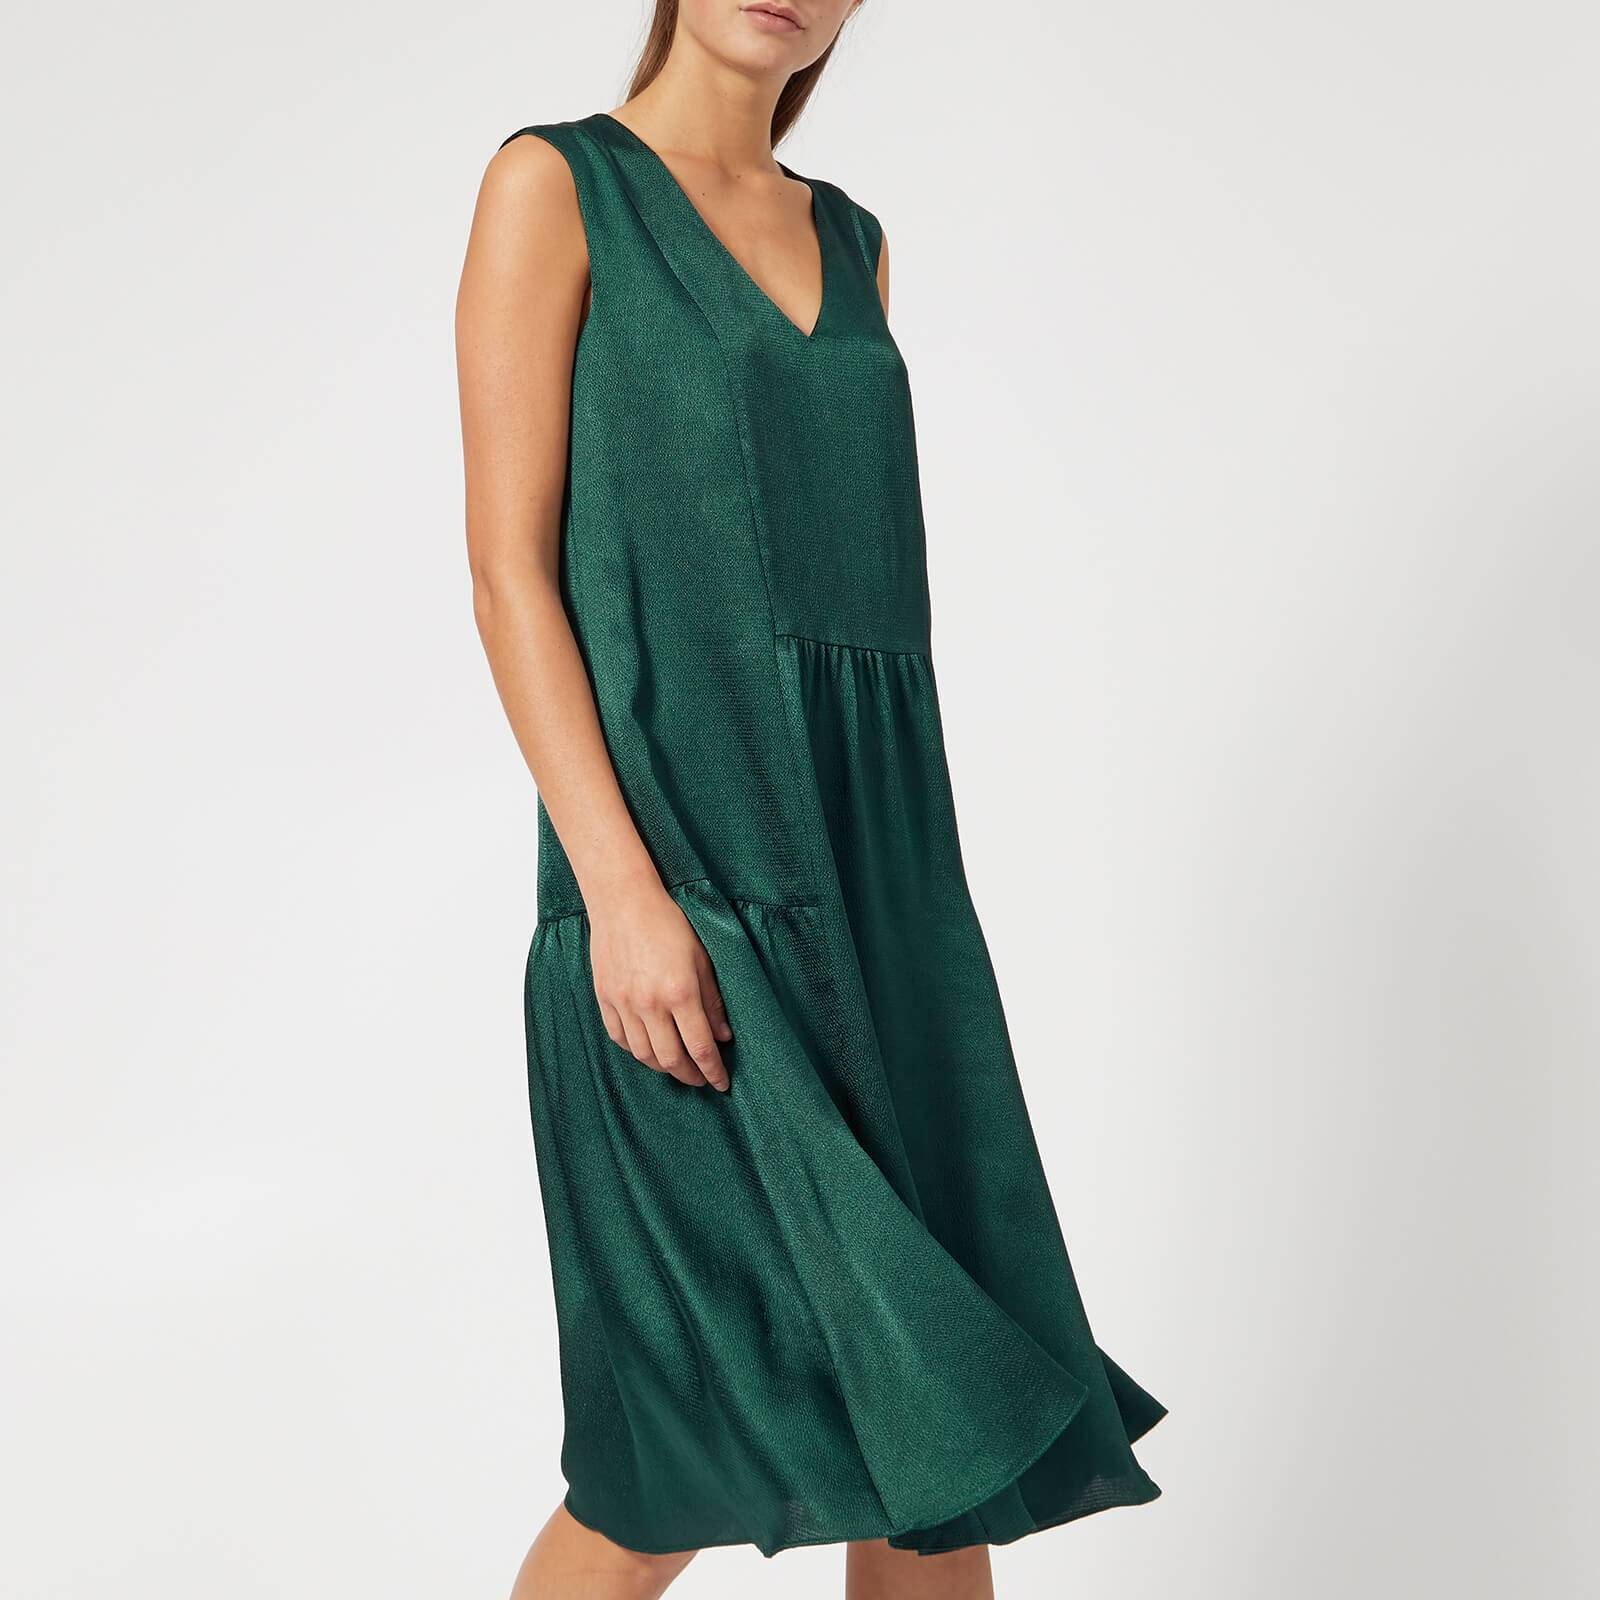 Gestuz Women's Masina Dress - Botanical Garden - EU 38/UK 10 - Green